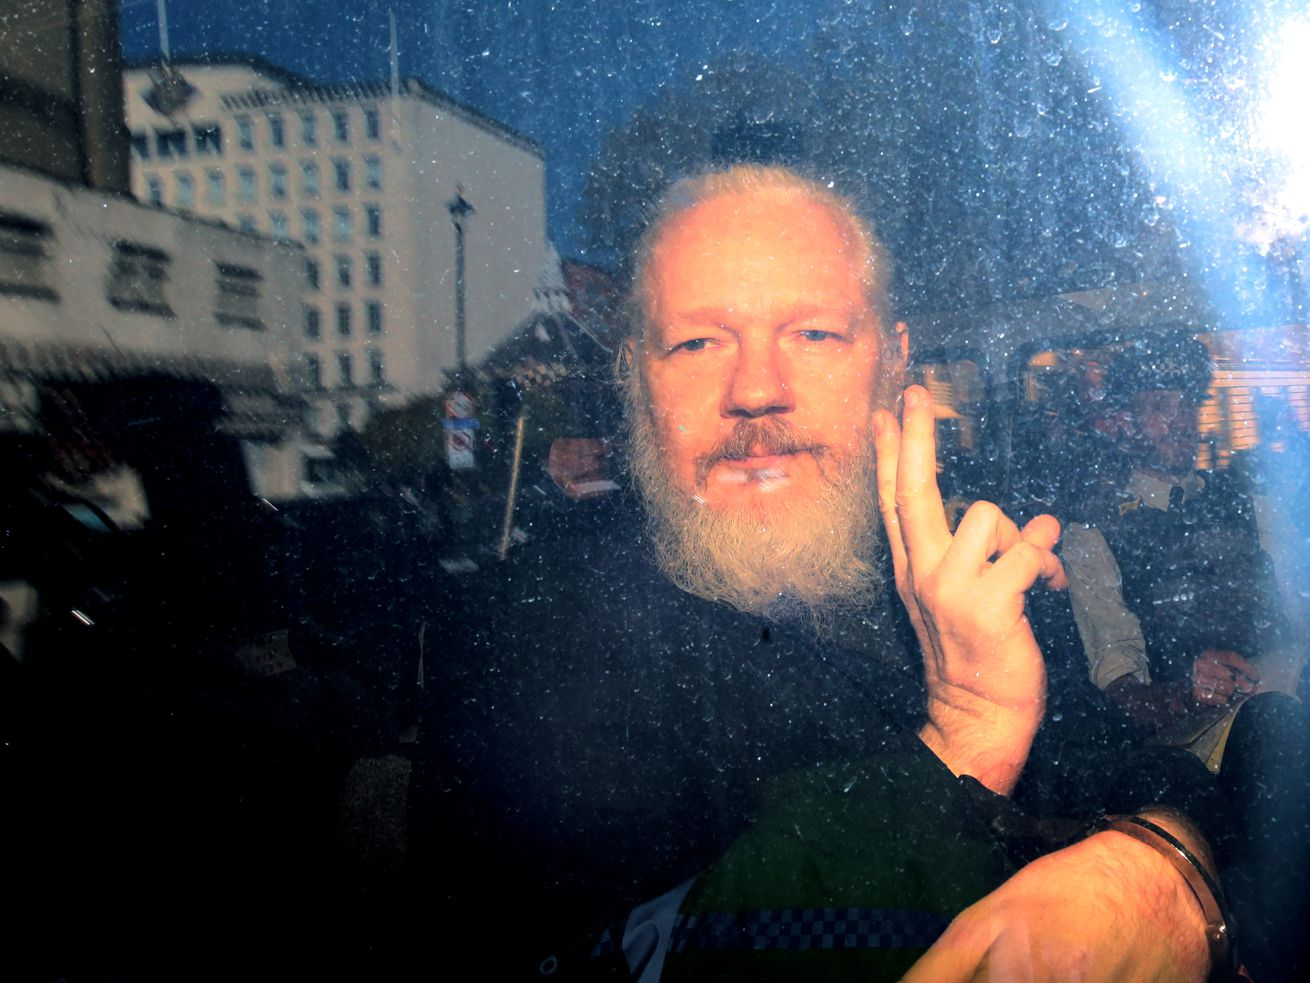 WiiLeaks founder Julian Assange gestures to the media upon arriving at a London court in April 2019 following his arrest.